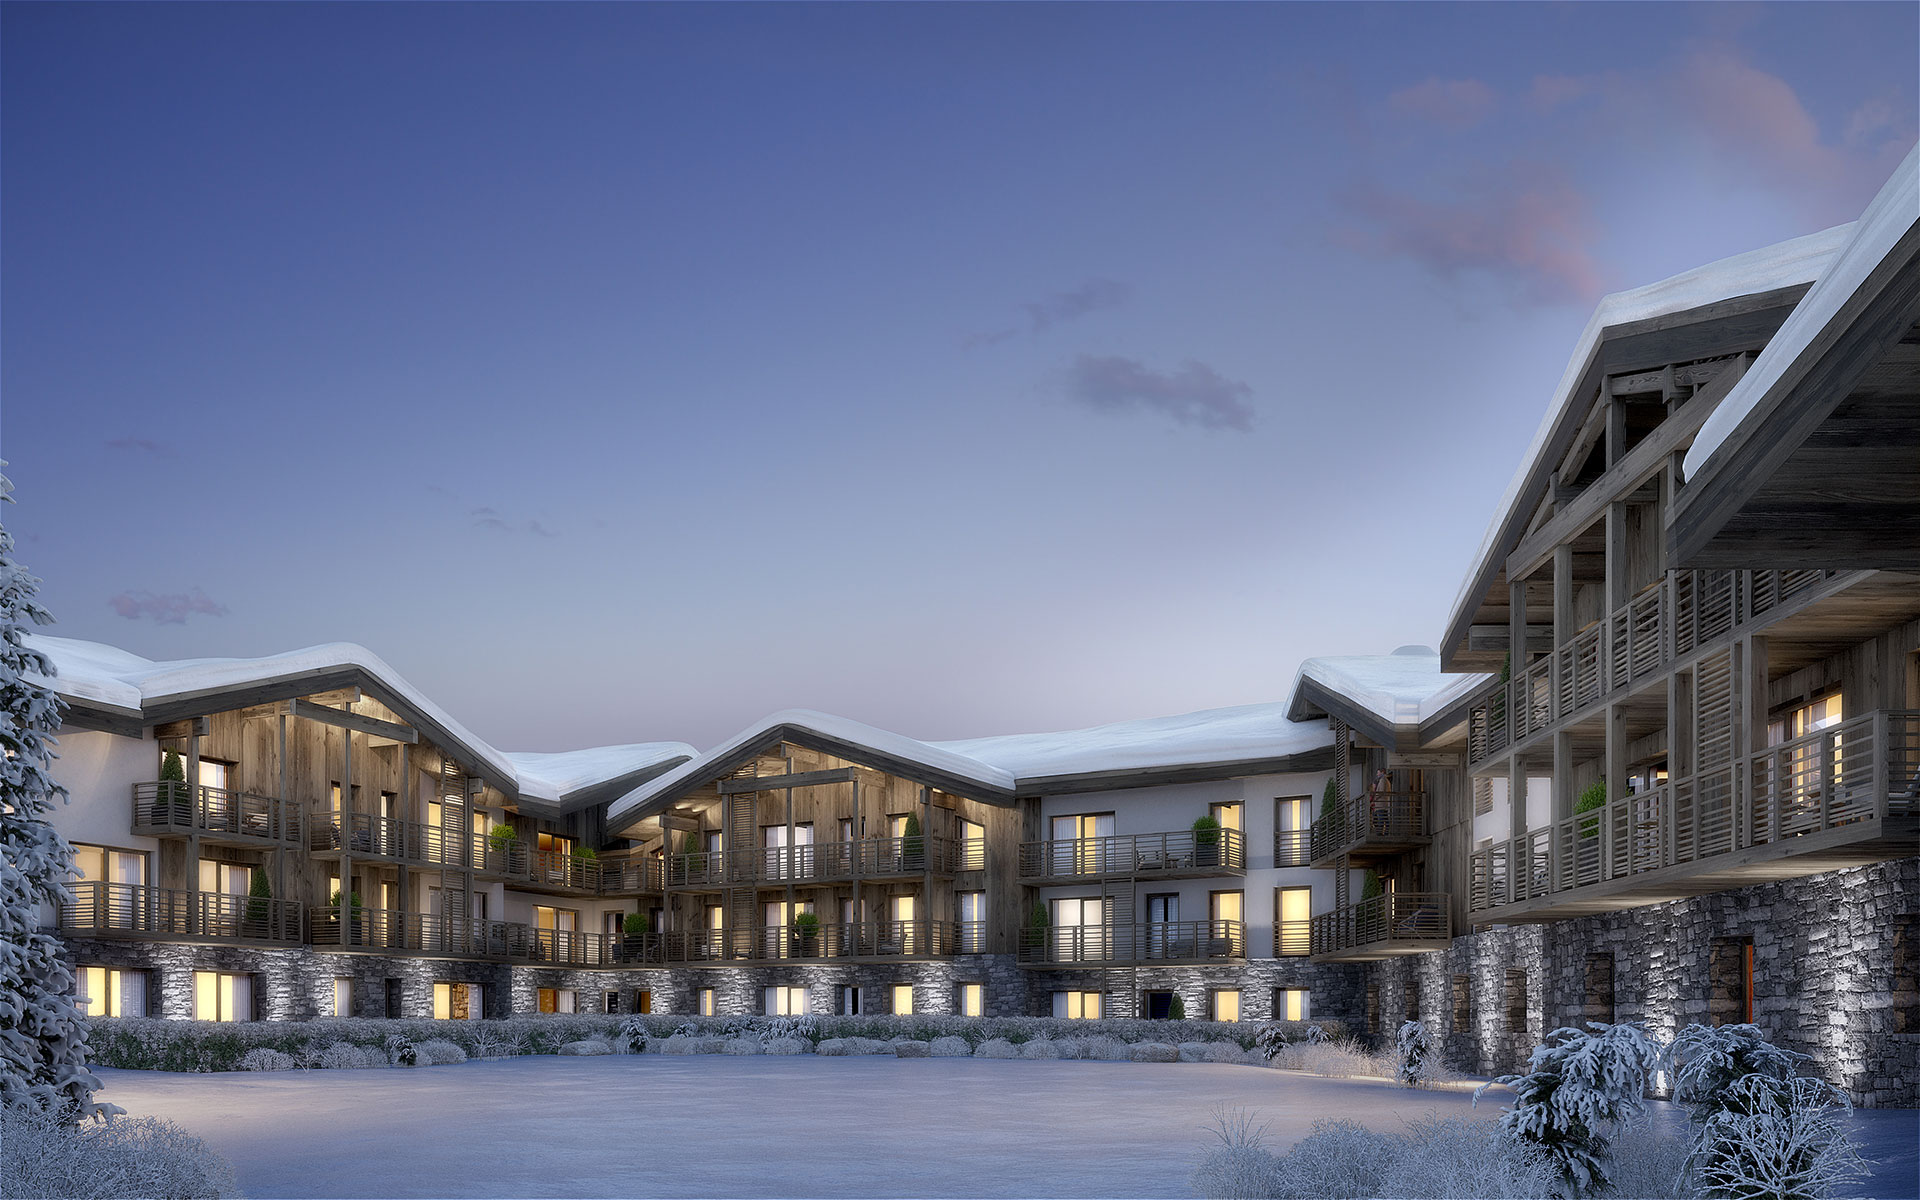 3D Exterior visualization of a resort chalet village in the Alps